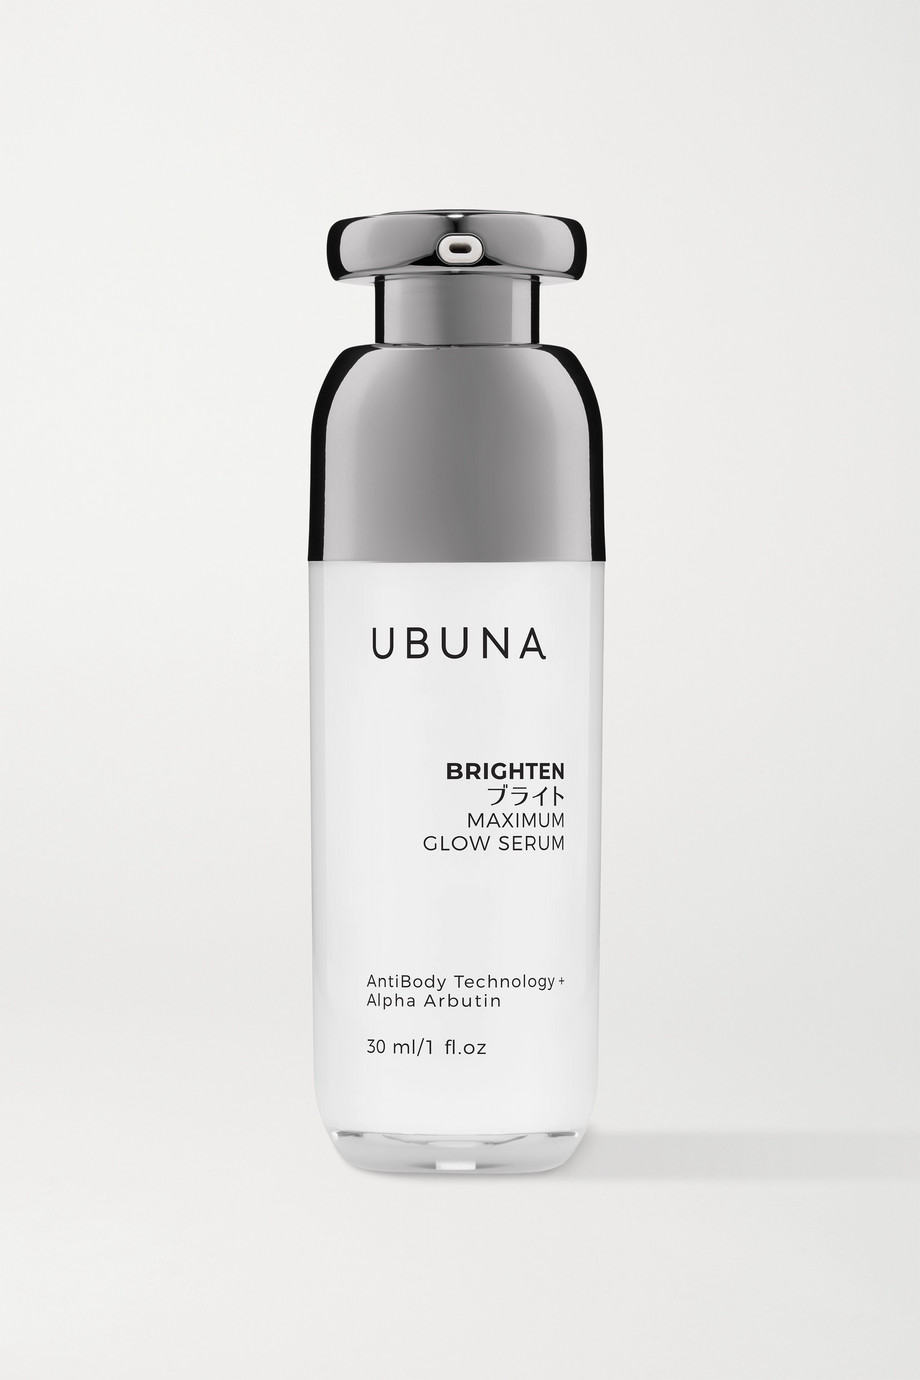 Ubuna Beauty Brighten Maximum Glow Serum, 30ml